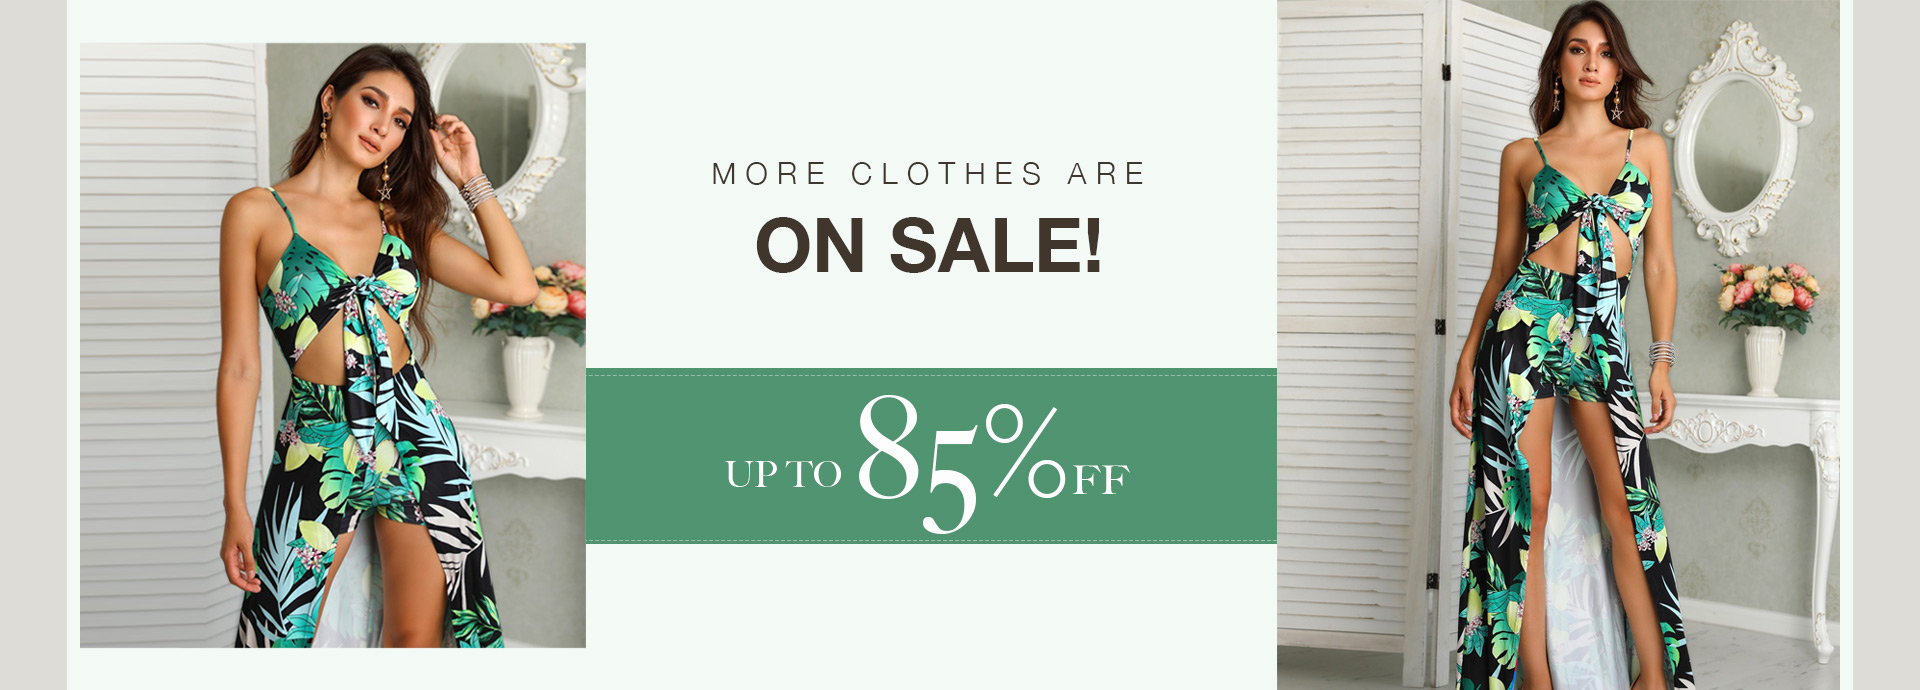 More Clothes Are On Sale